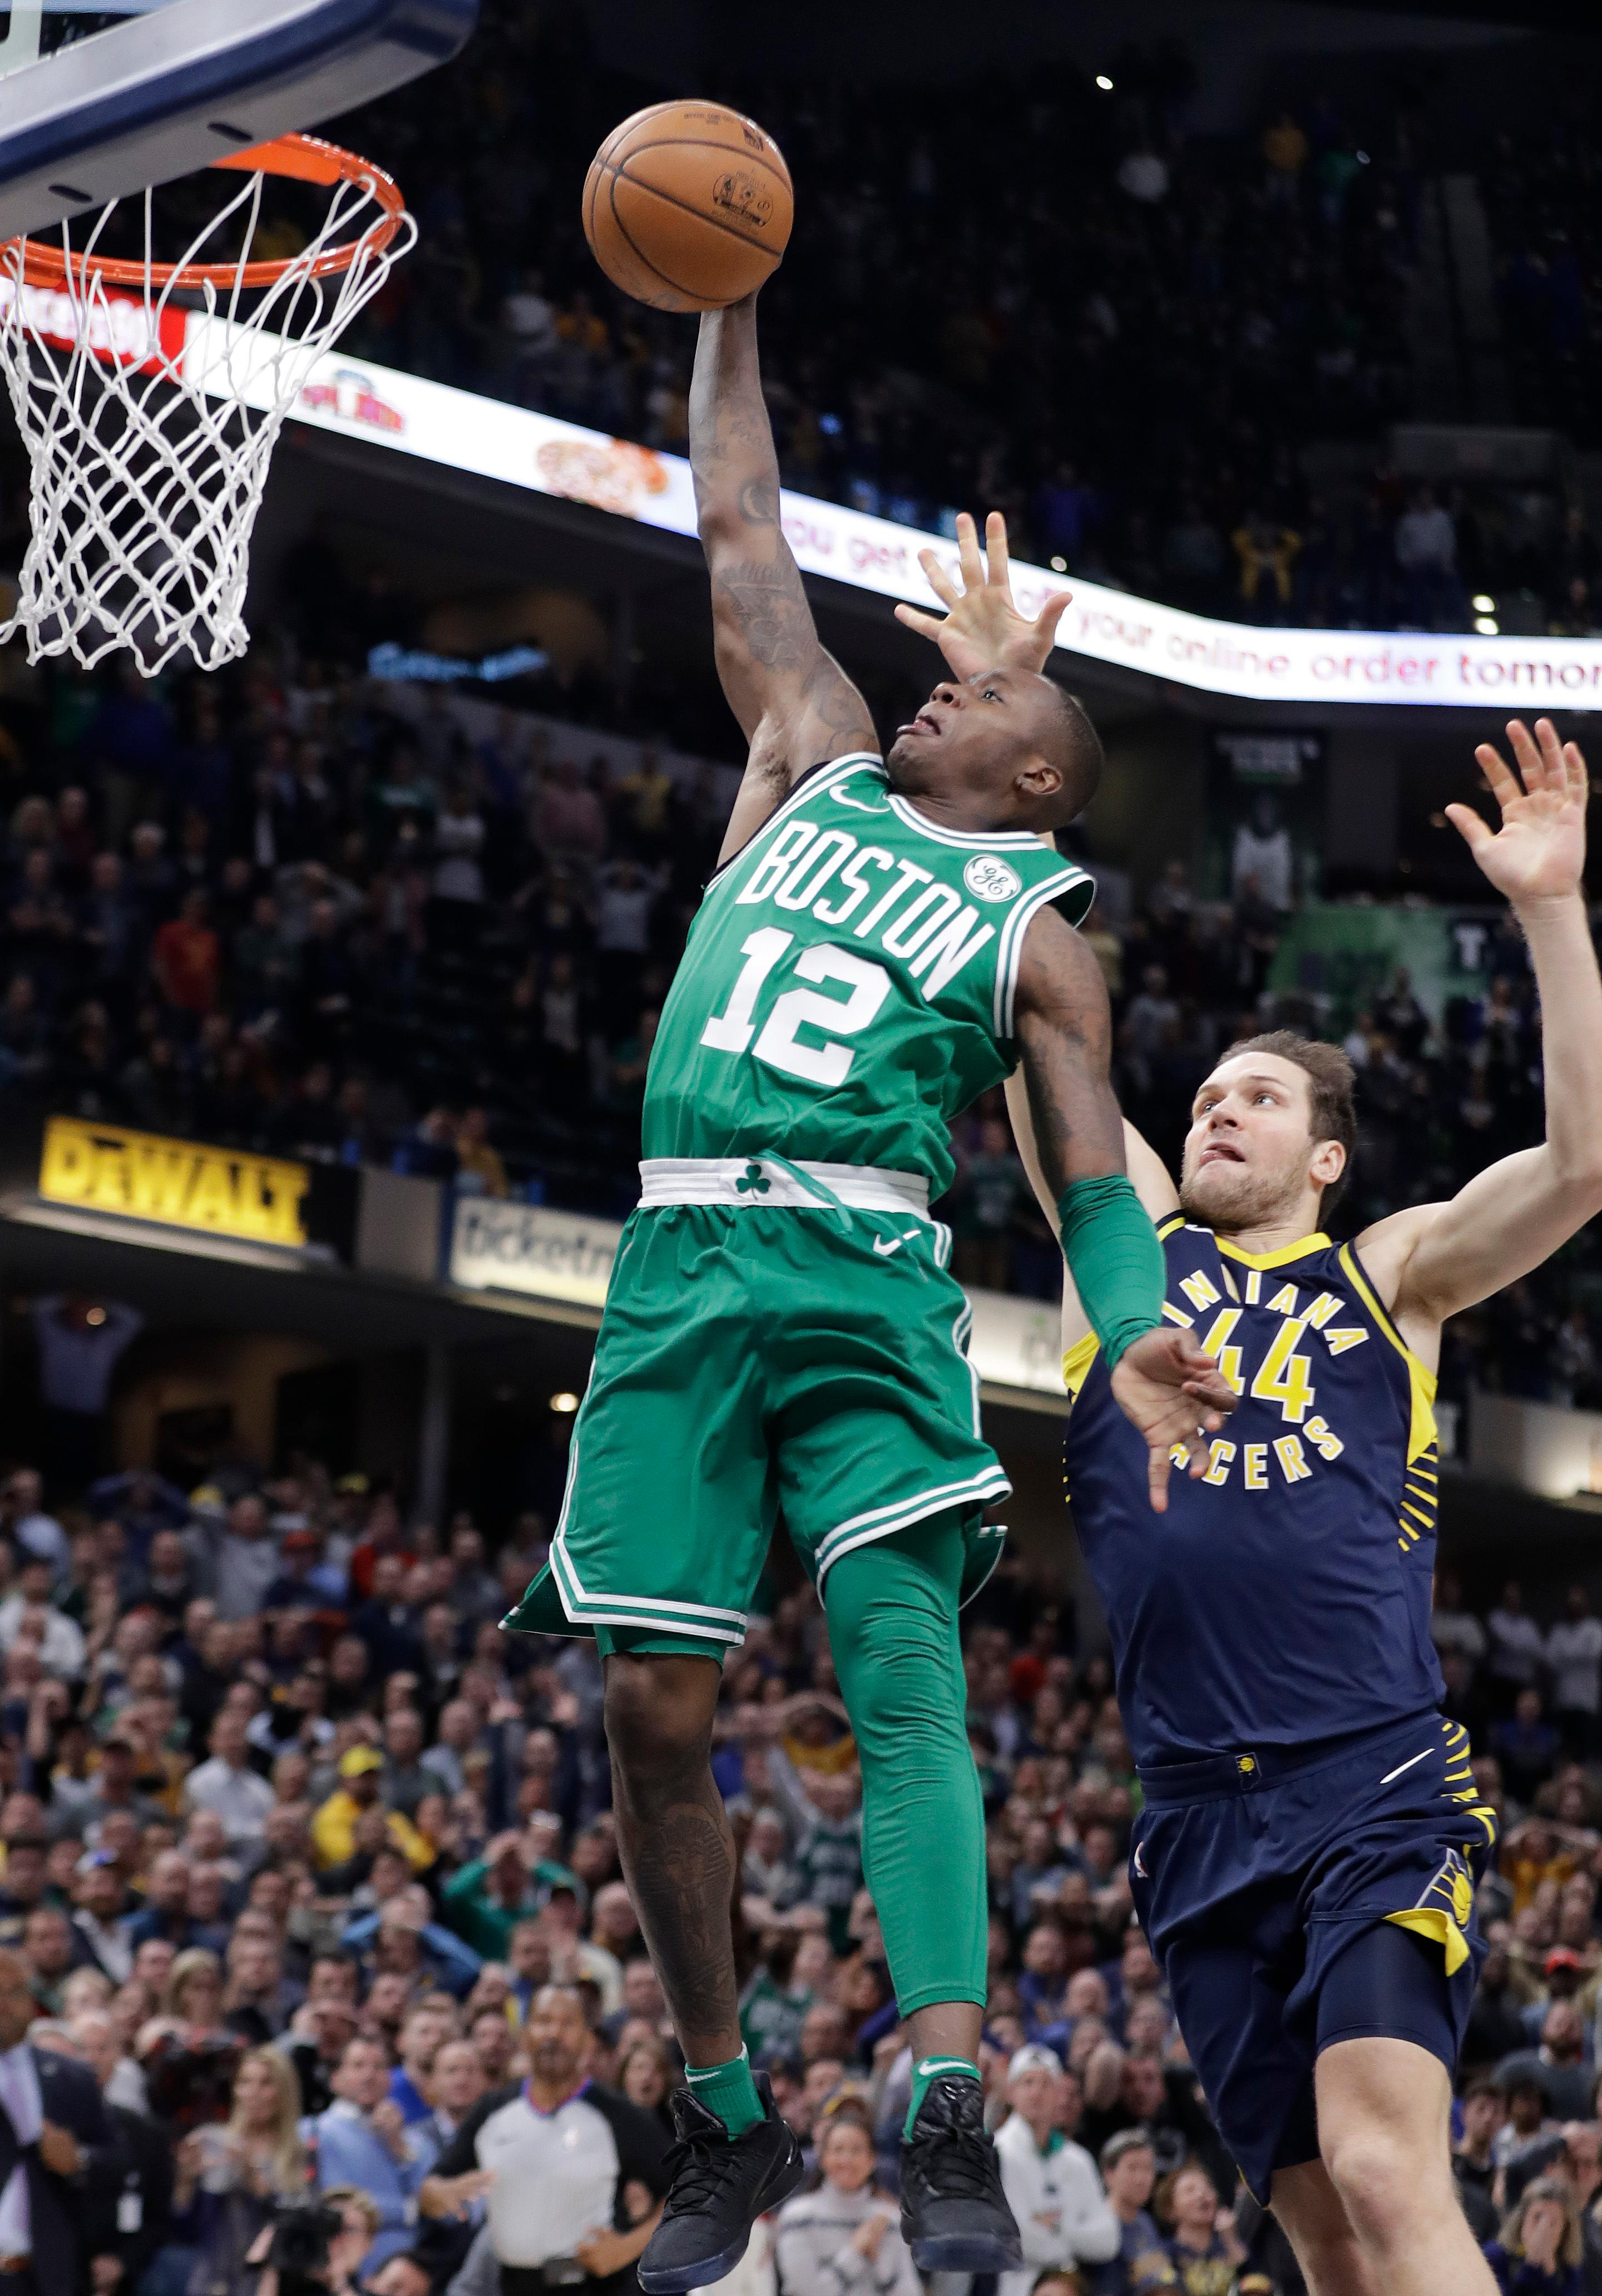 Boston Celtics' Terry Rozier (12) goes up for the game winning dunk against Indiana Pacers' Bojan Bogdanovic during the second half of an NBA basketball game, Monday, Dec. 18, 2017, in Indianapolis. Boston won 112-111. (AP Photo/Darron Cummings)